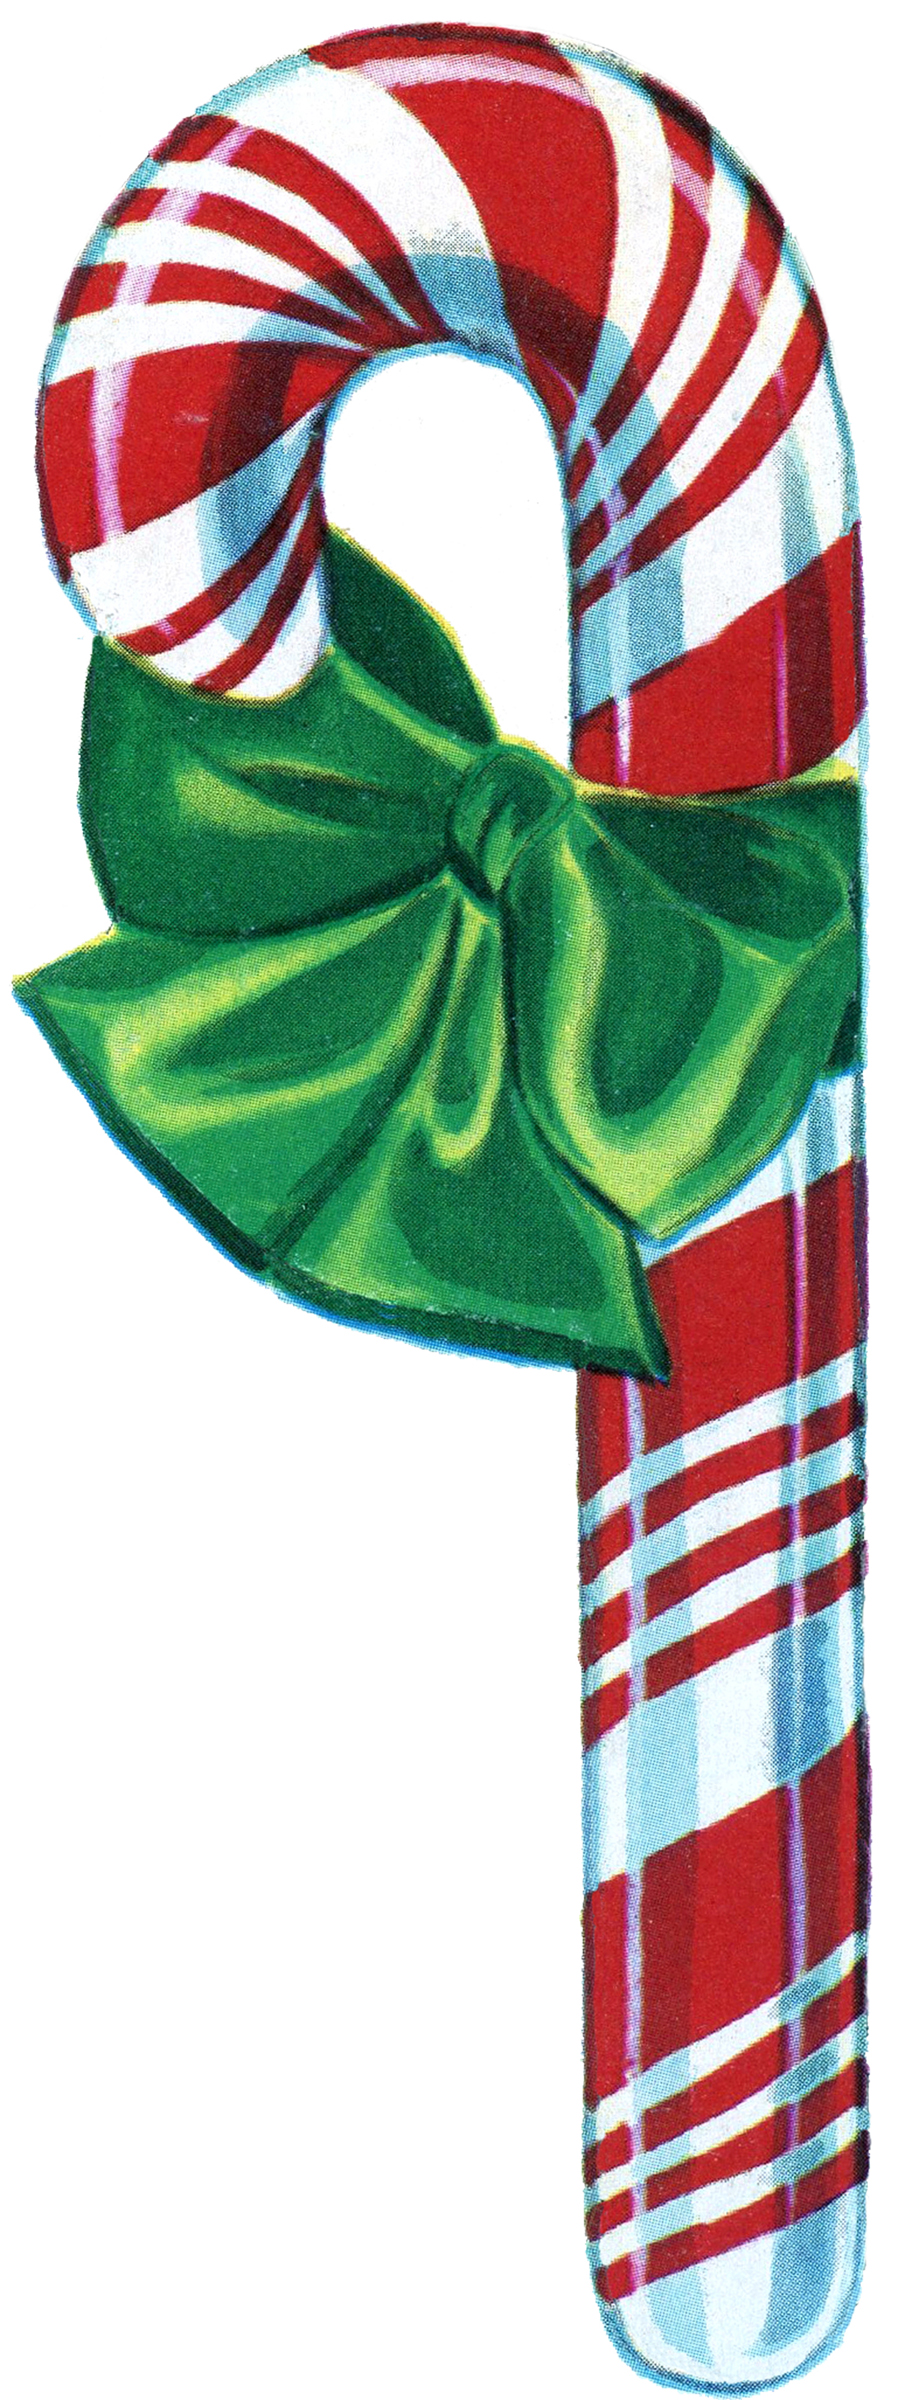 898x2400 Candy Cane Clip Art Clipart Free Clipart Microsoft Clipart Image 3